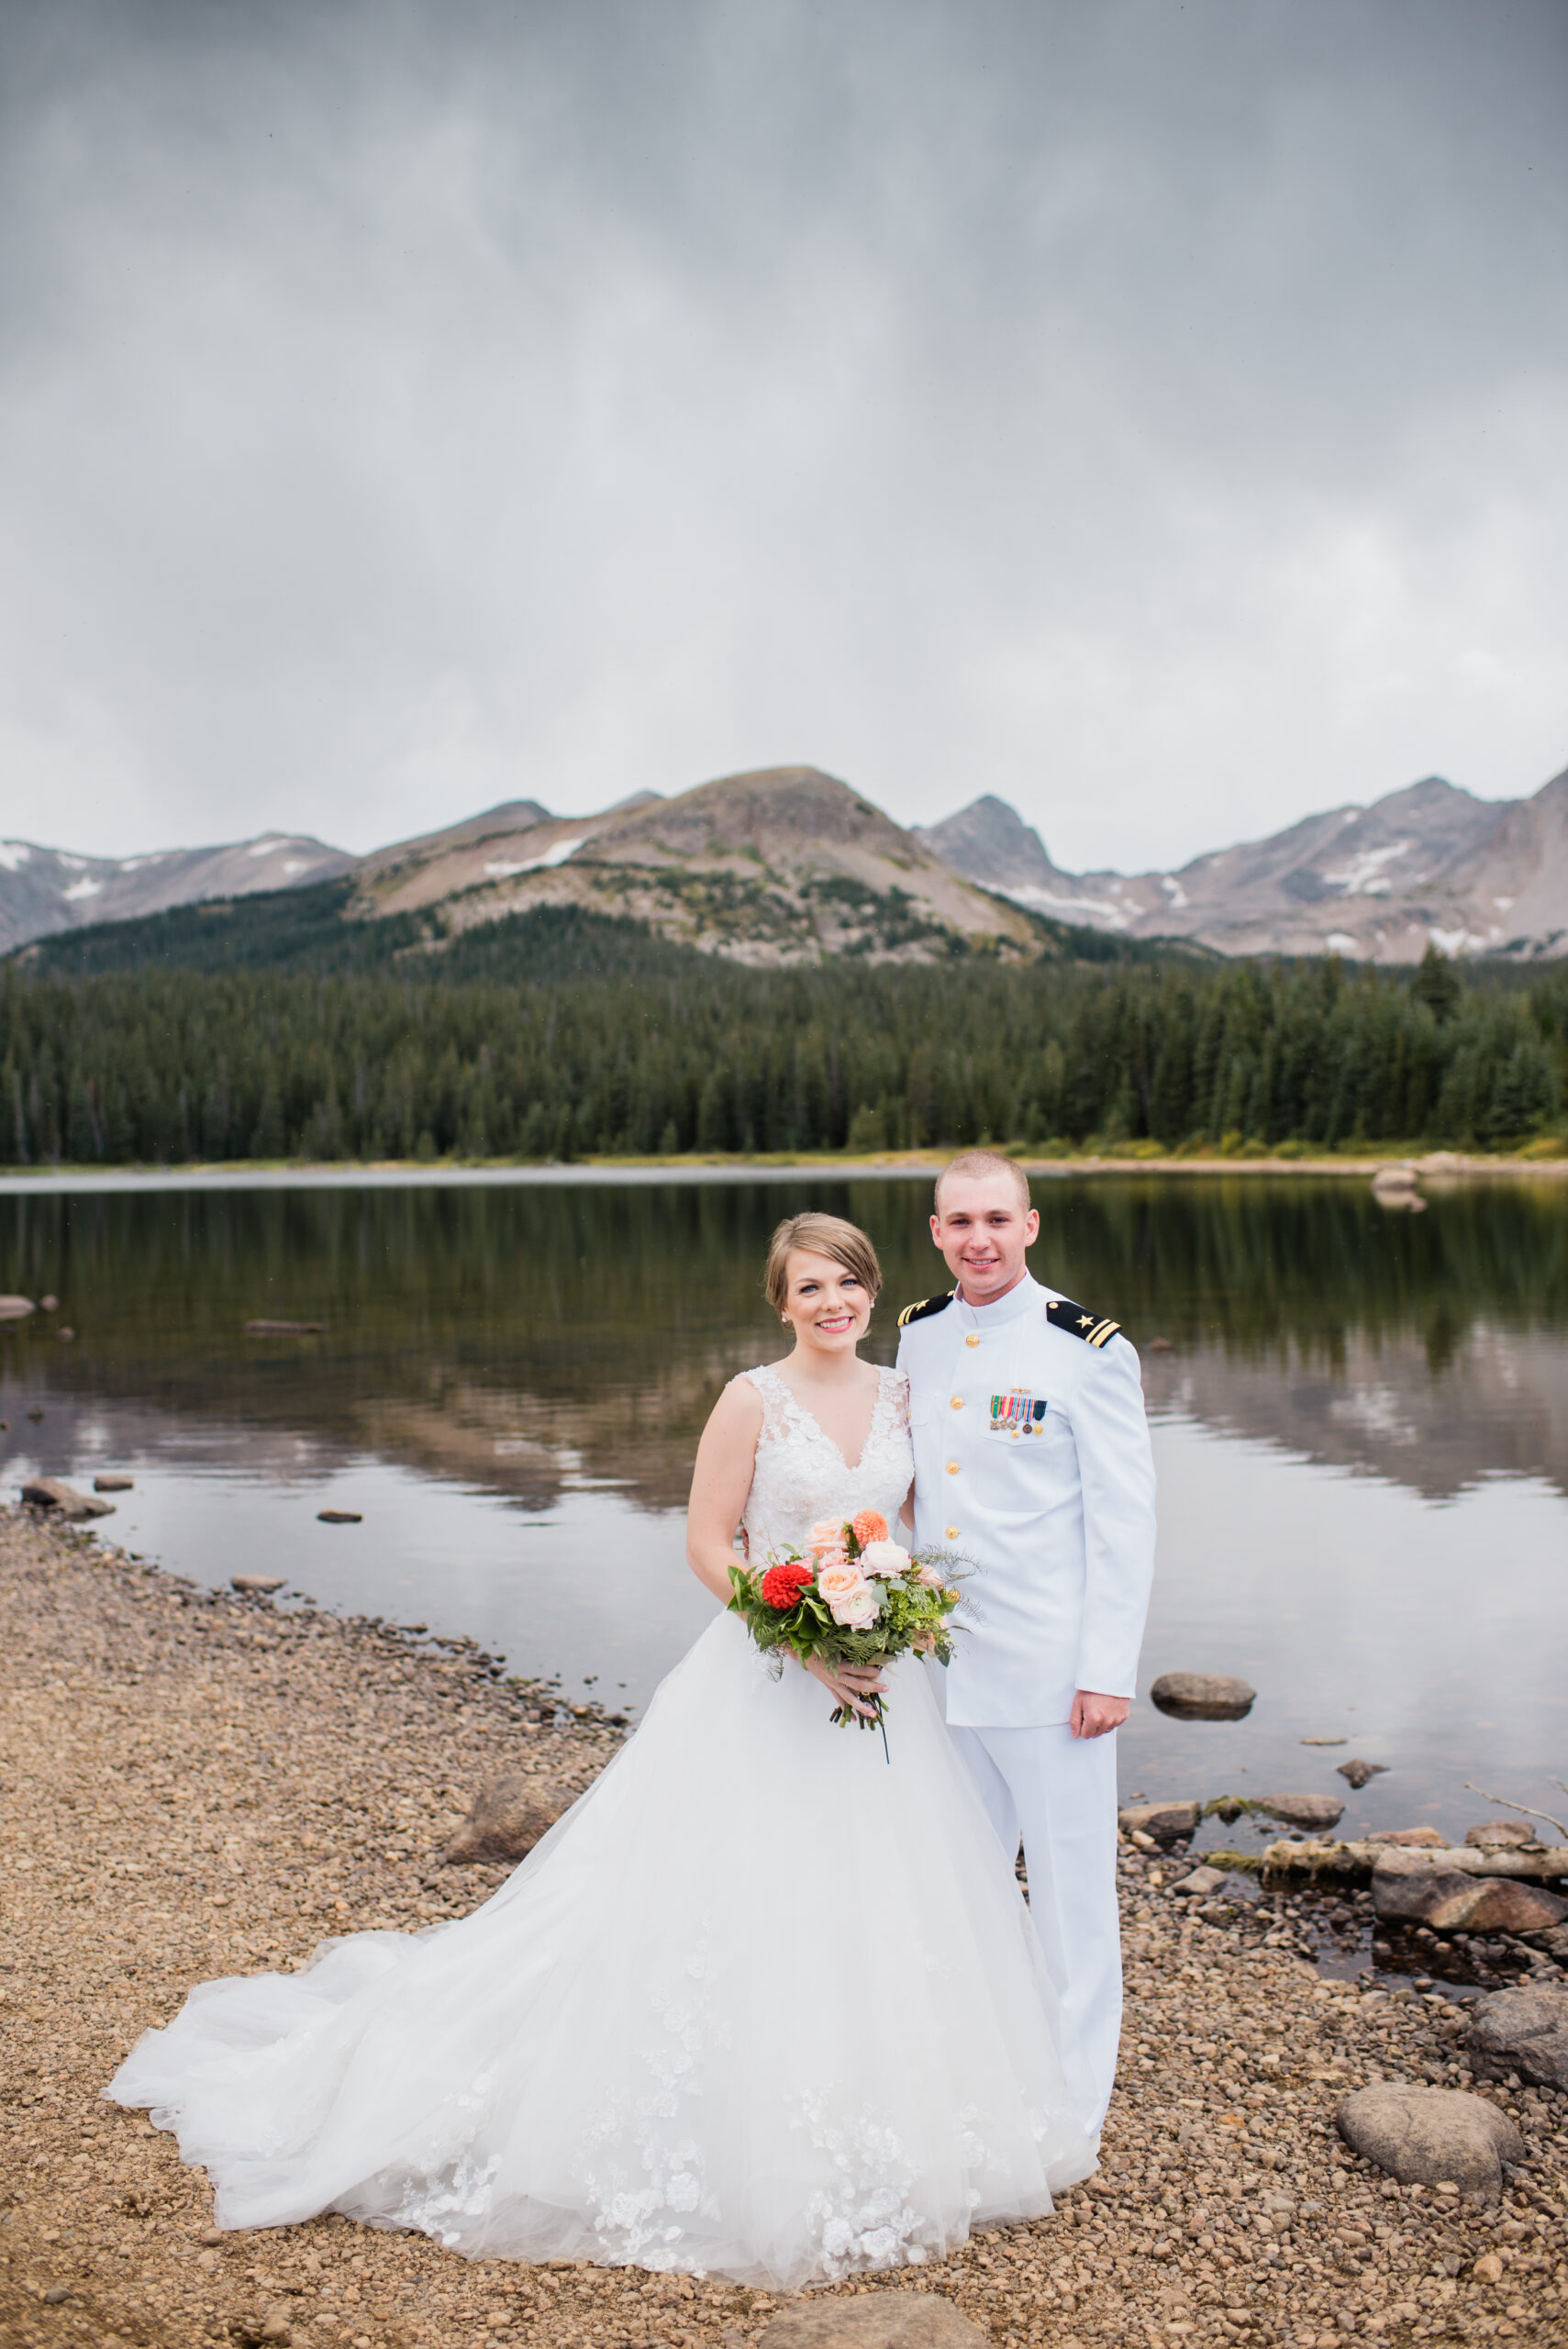 bride and groom by the lake with mountains in the background